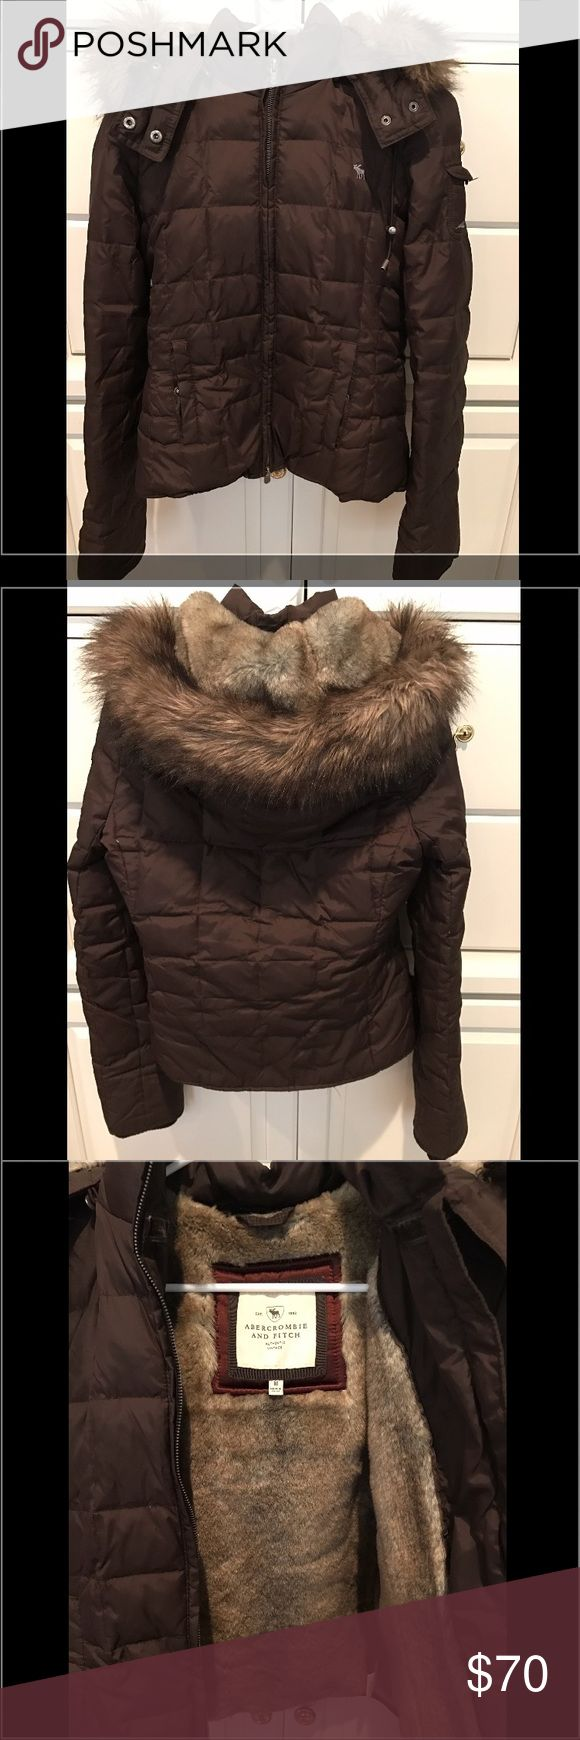 Abercrombie and Fitch Winter faux fur jacket Gently worn Abercrombie and Fitch winter coat in very good condition. Lined with faux fur on the inside and around the hood. Abercrombie & Fitch Jackets & Coats Puffers